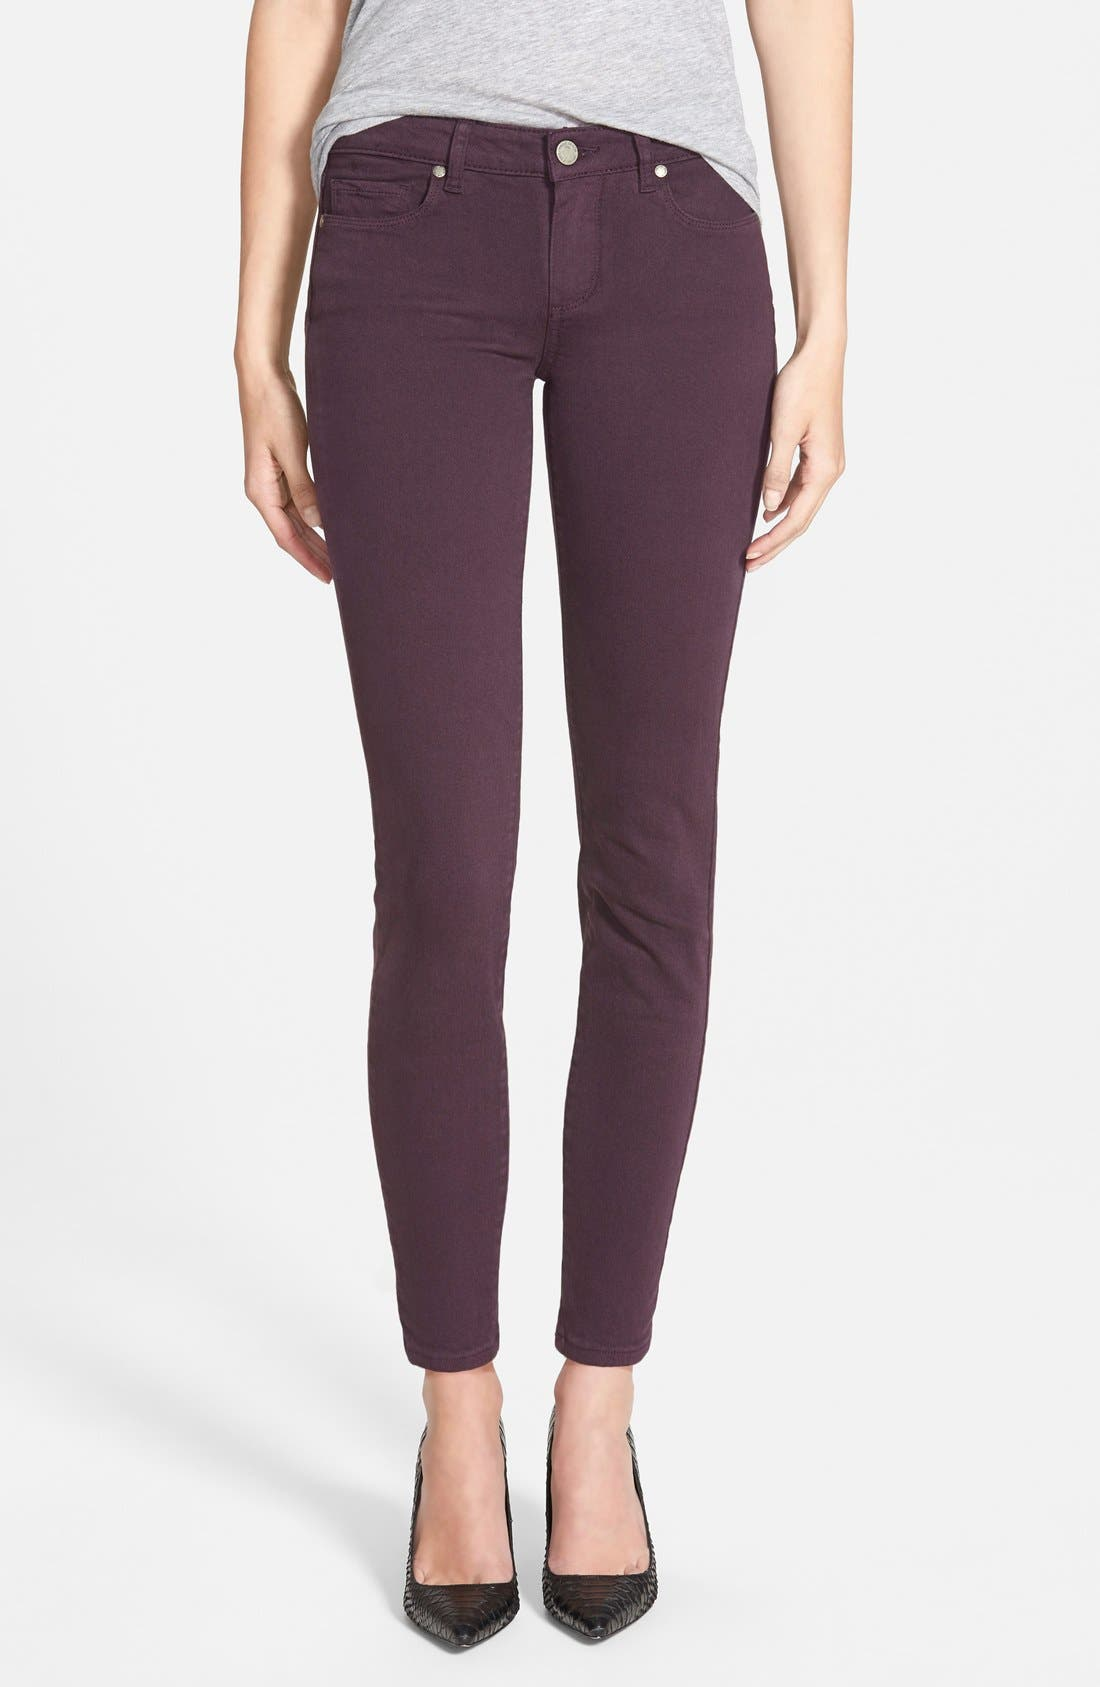 Main Image - Paige Denim 'Verdugo' Ankle Skinny Jeans (Autumn Plum) (Nordstrom Exclusive)